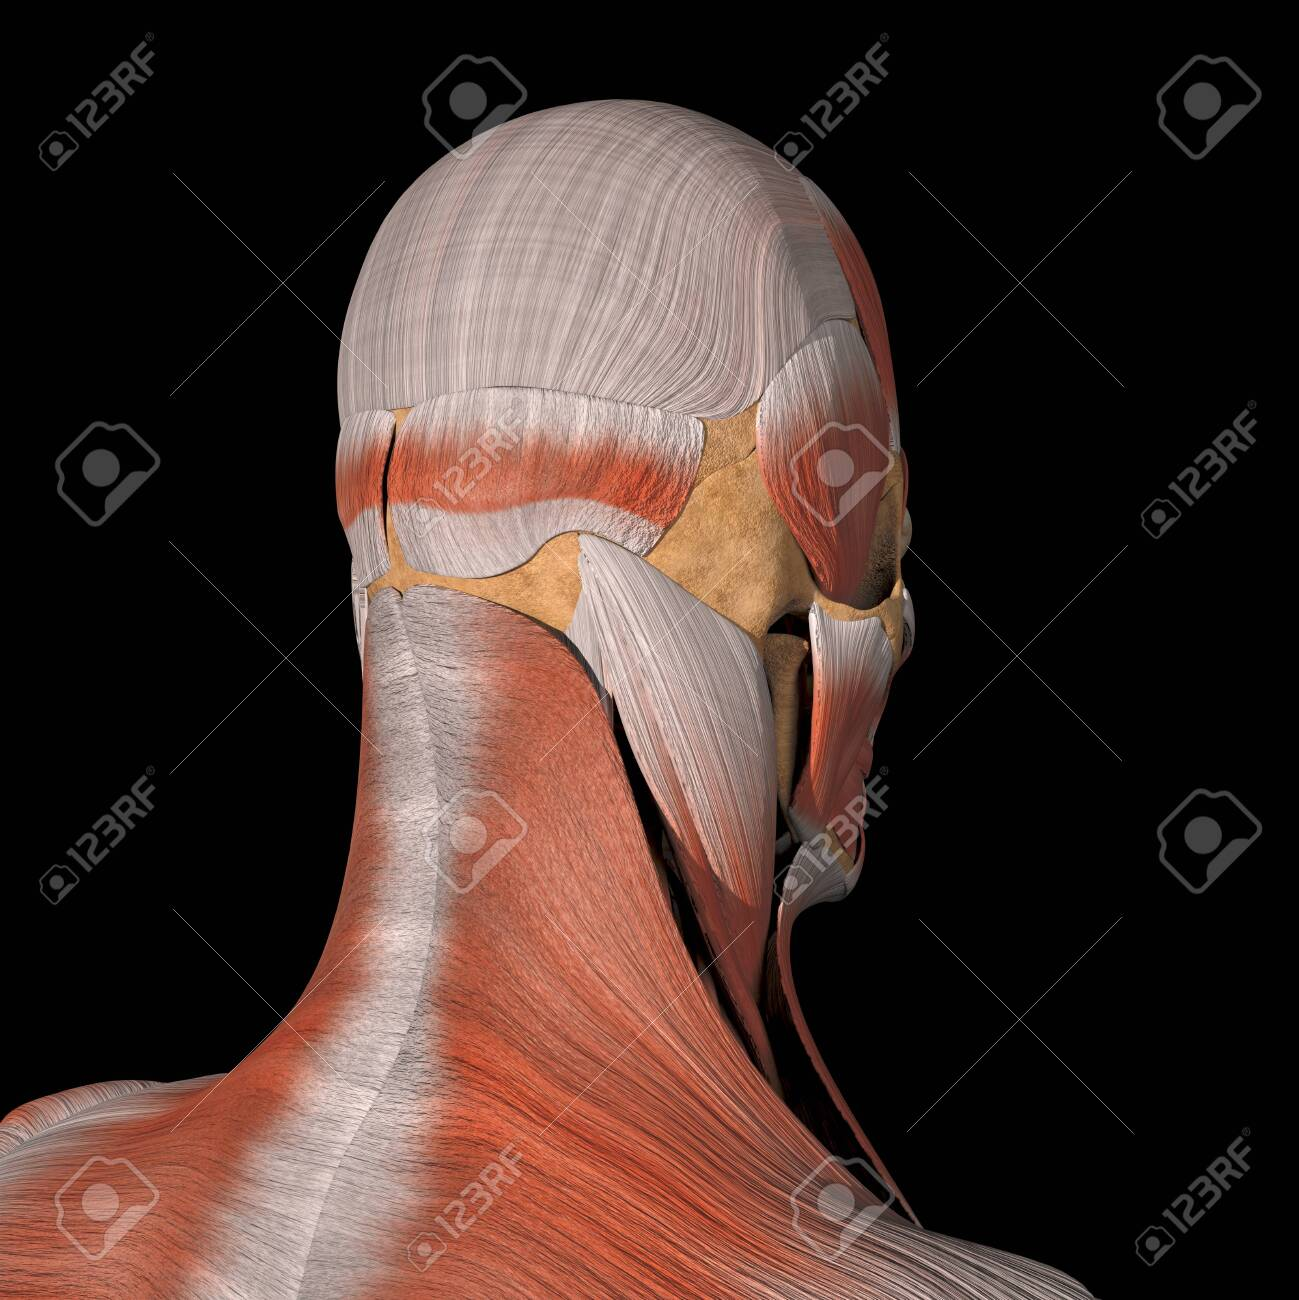 This is a 3d illustration of the facial muscles back view - 142140484